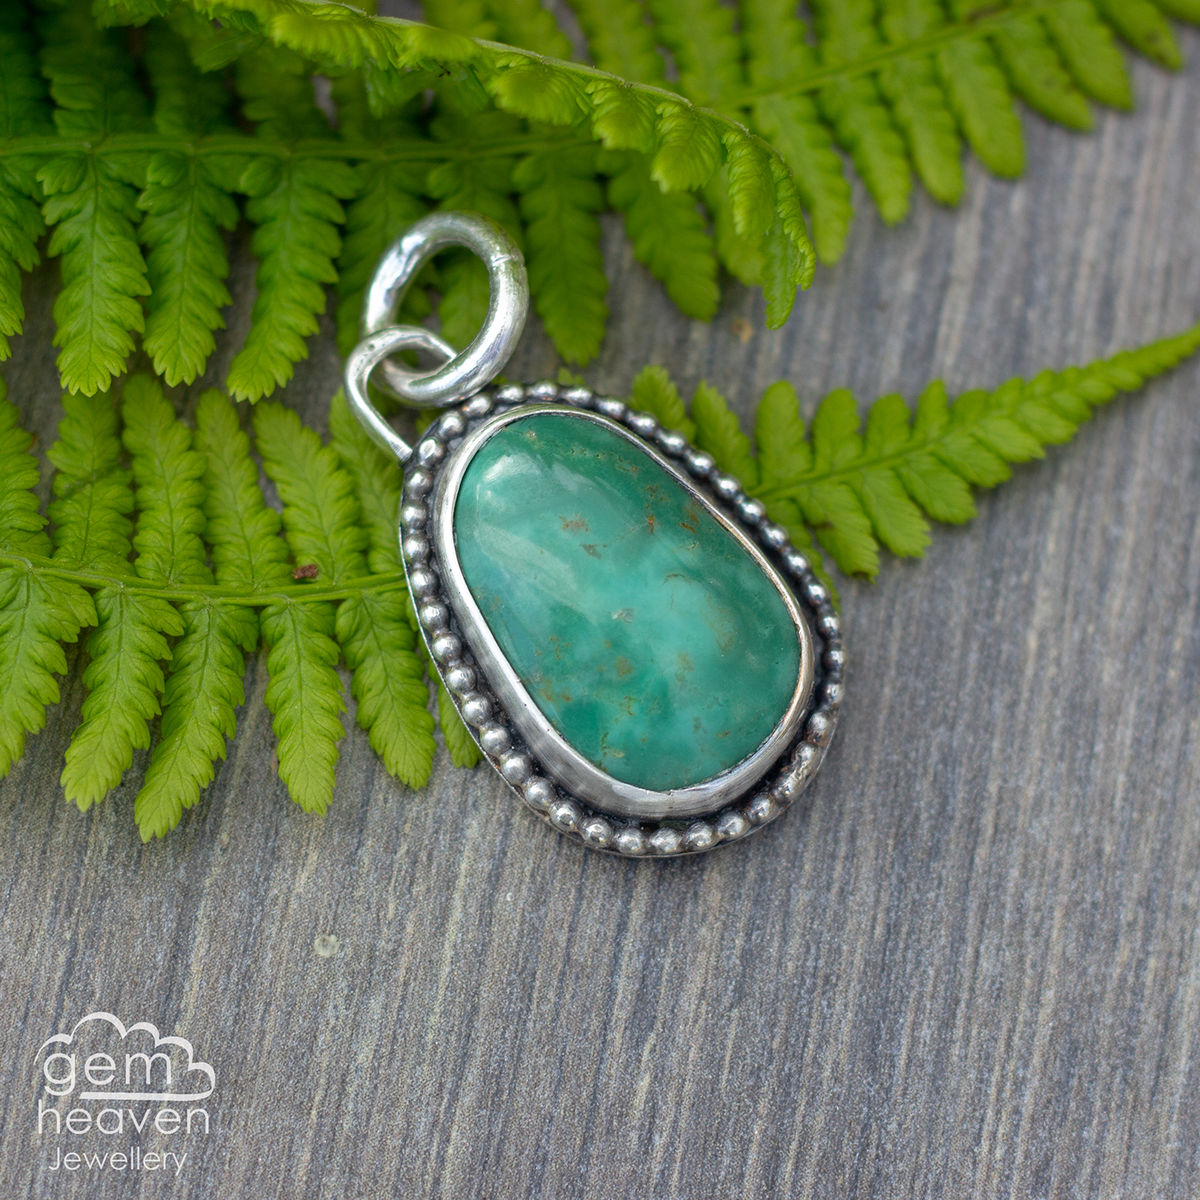 Storyteller Turquoise Charm  - product images  of